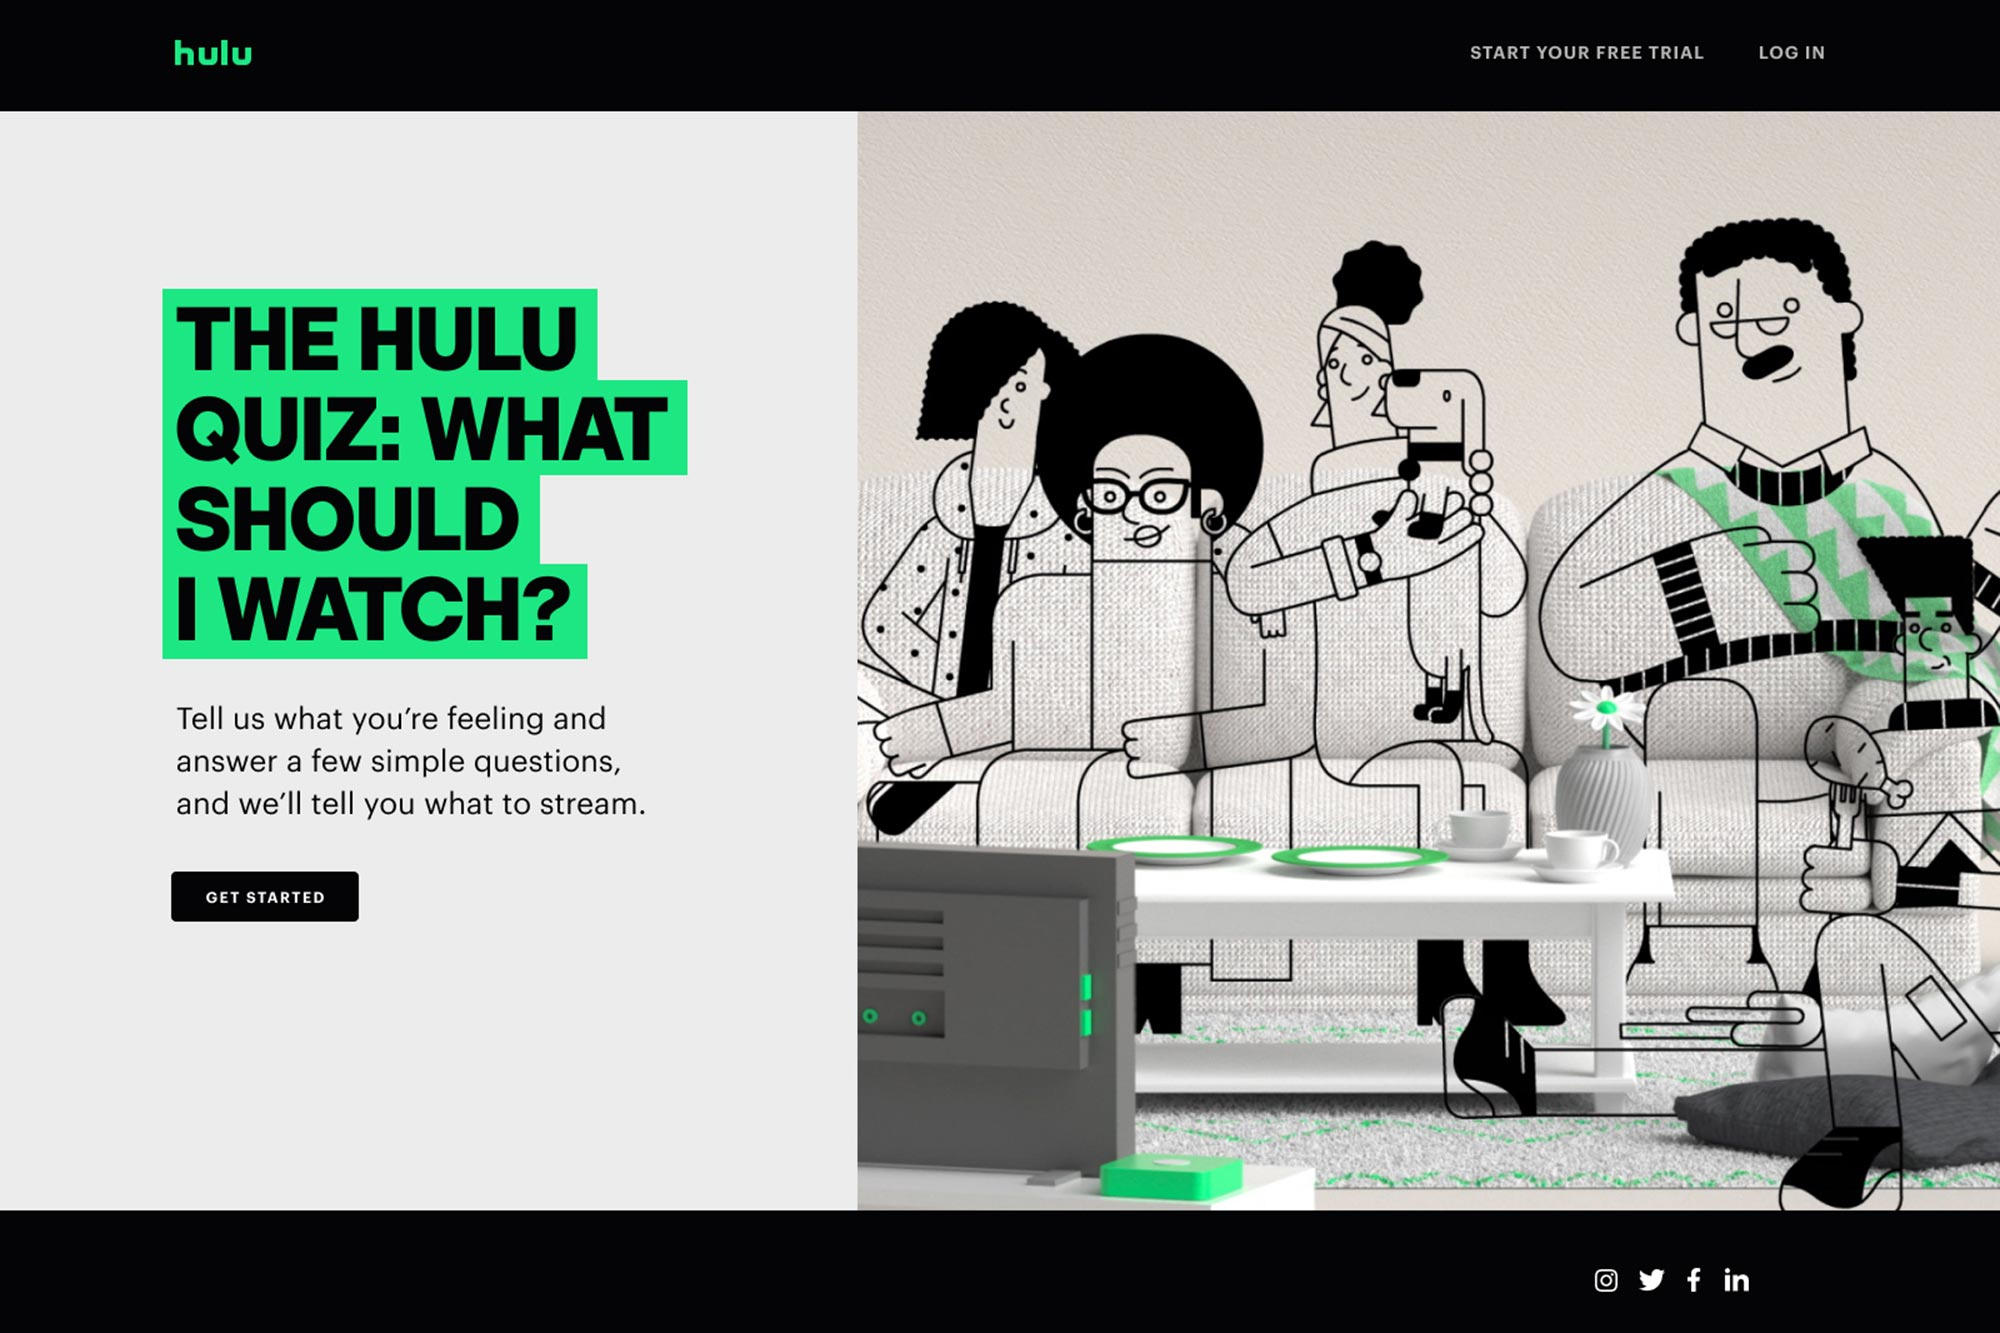 Hulu's new 'What Should I Watch' quiz